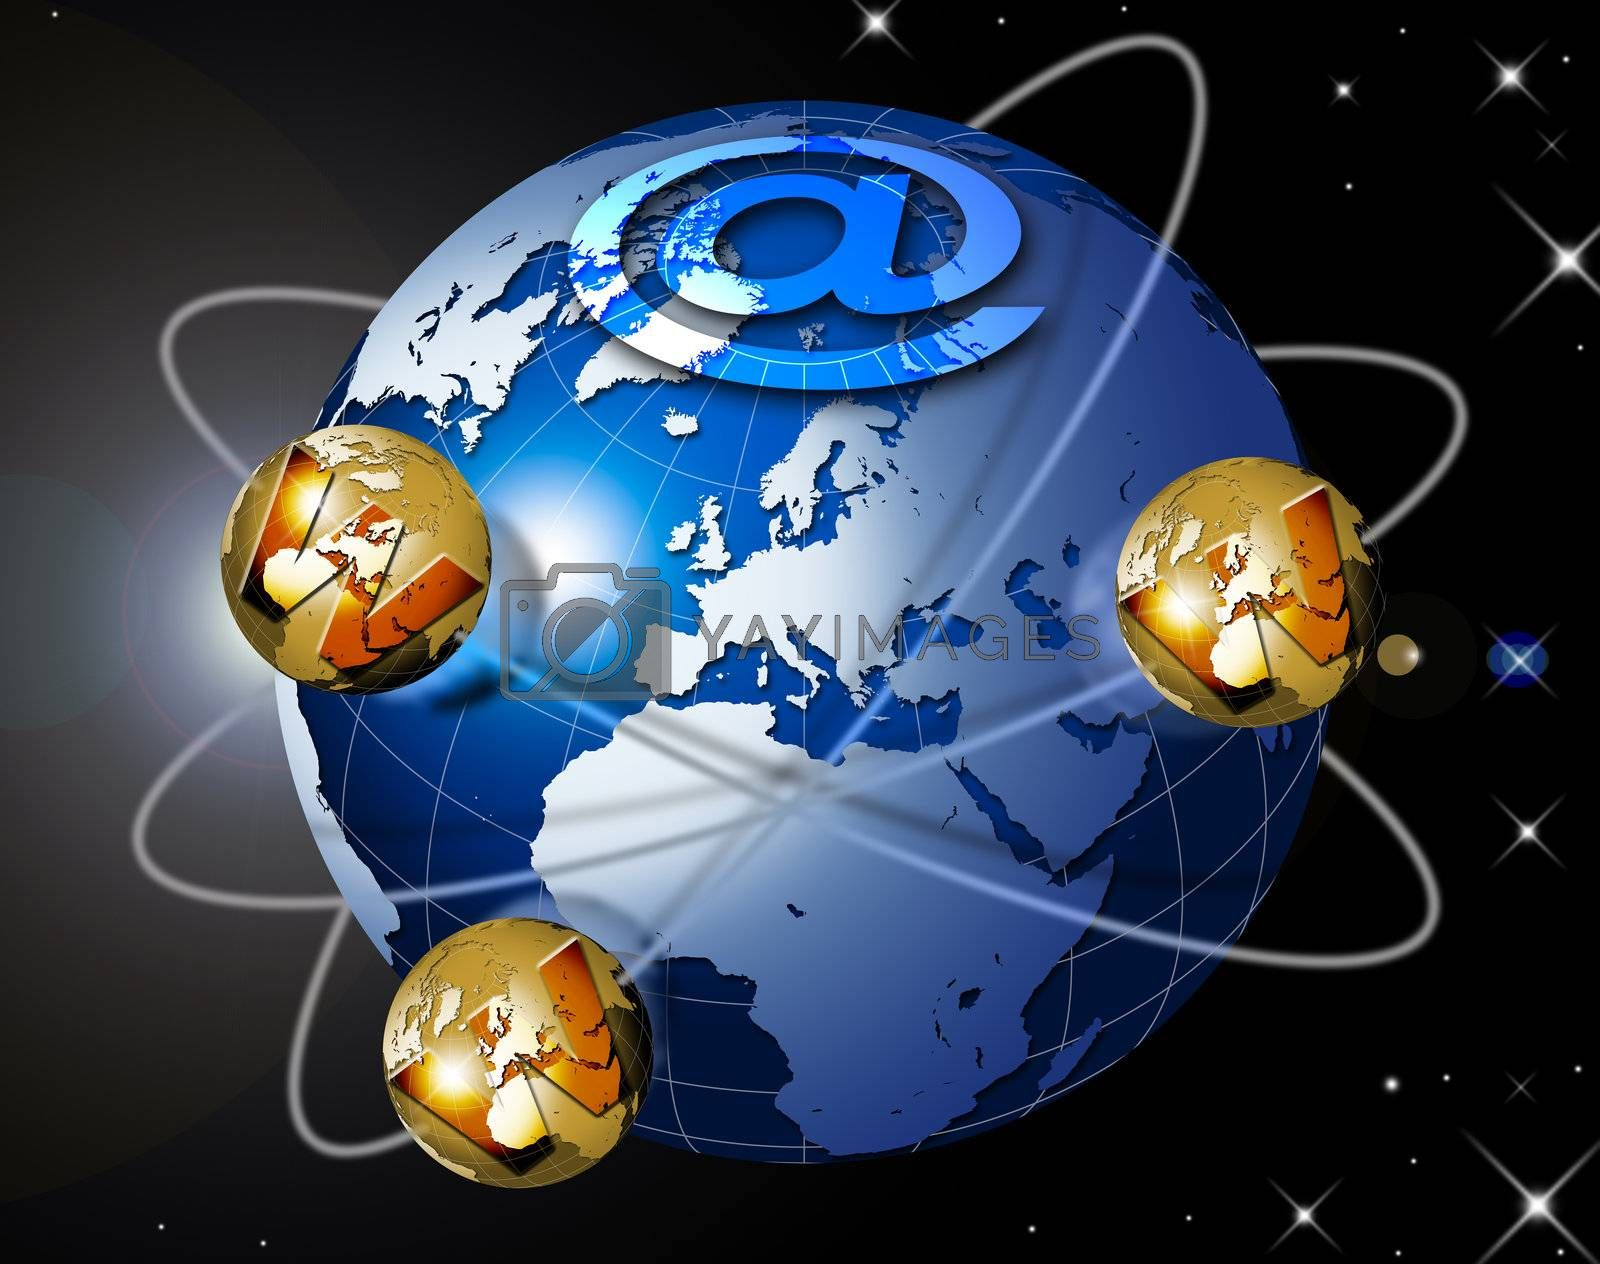 Illustration symbol www and internet with blue terrestrial globe, planets and stars